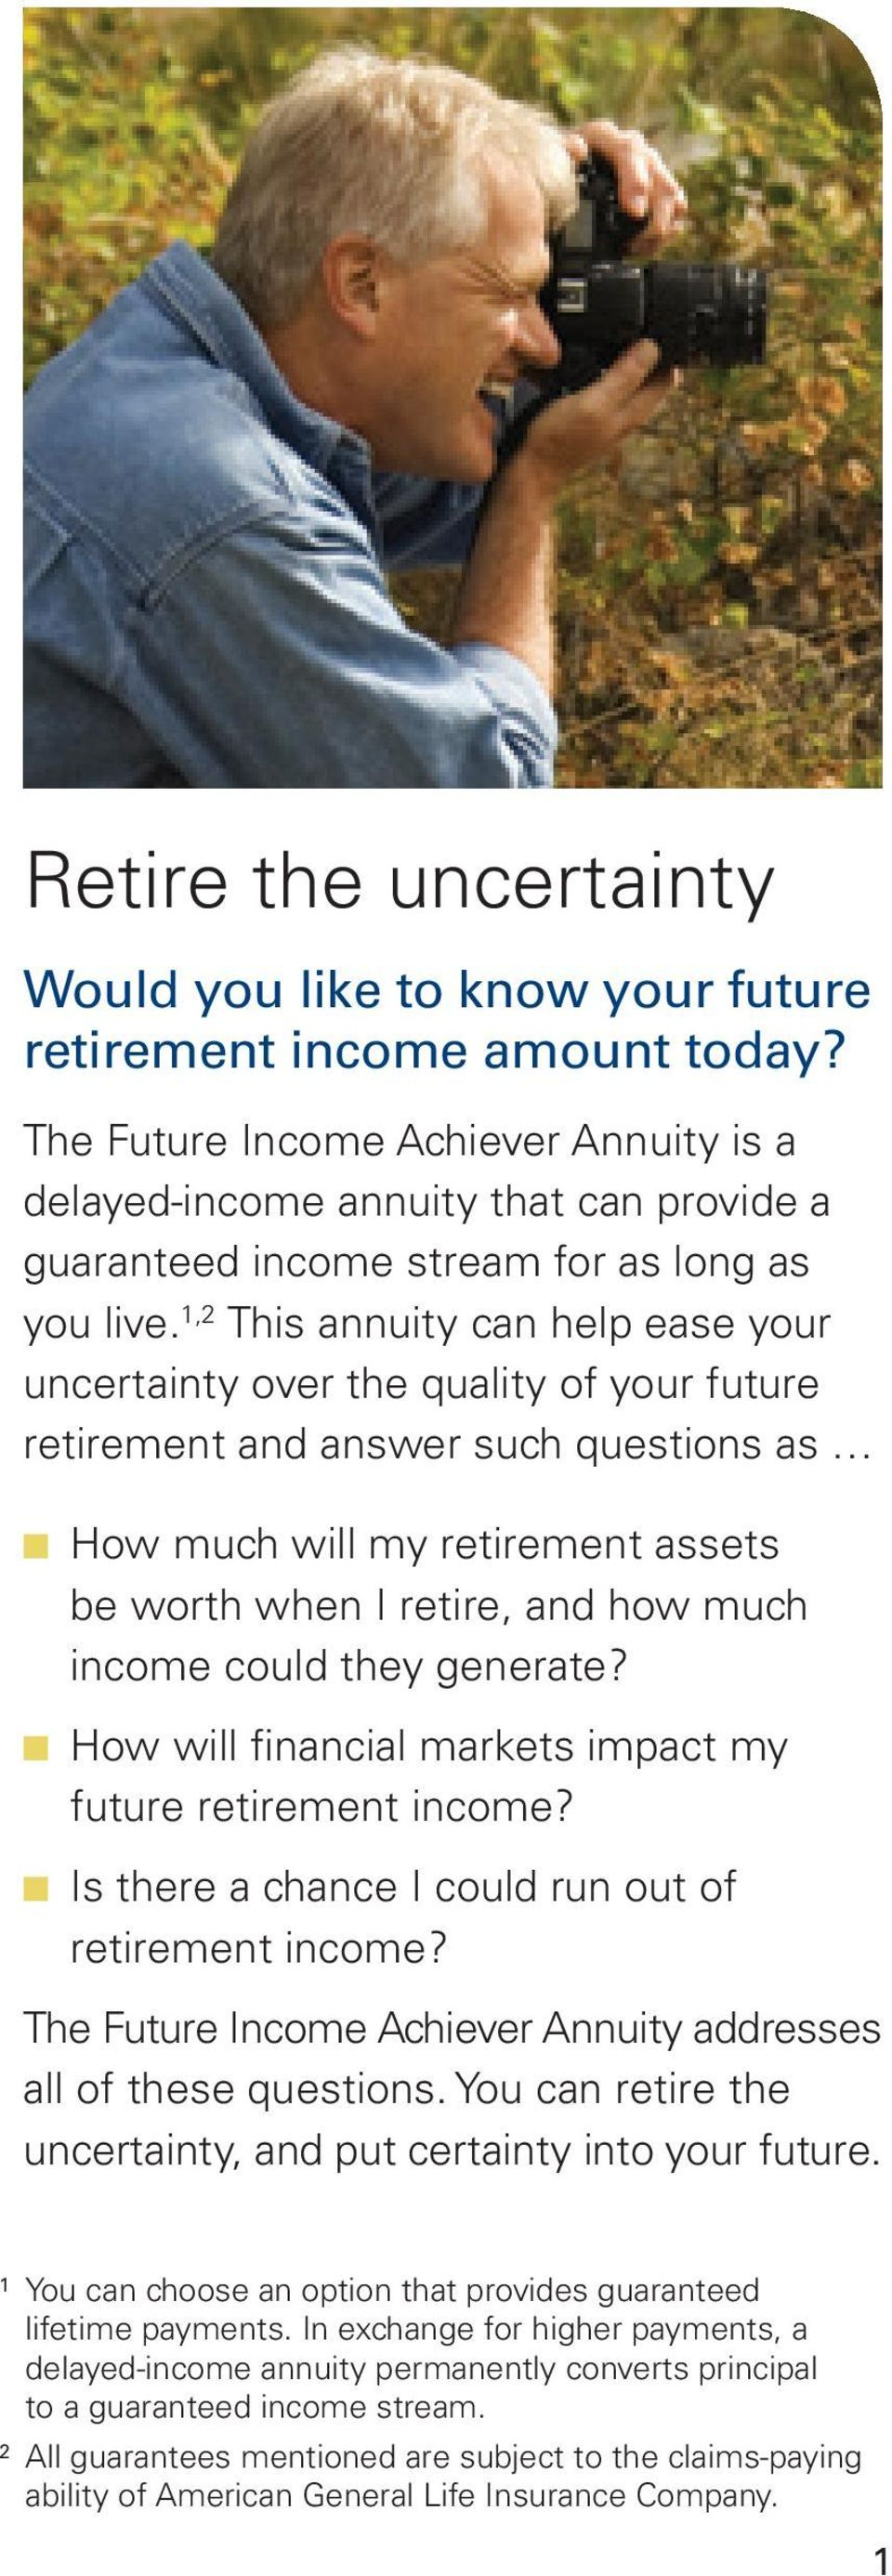 1,2 This annuity can help ease your uncertainty over the quality of your future retirement and answer such questions as How much will my retirement assets be worth when I retire, and how much income